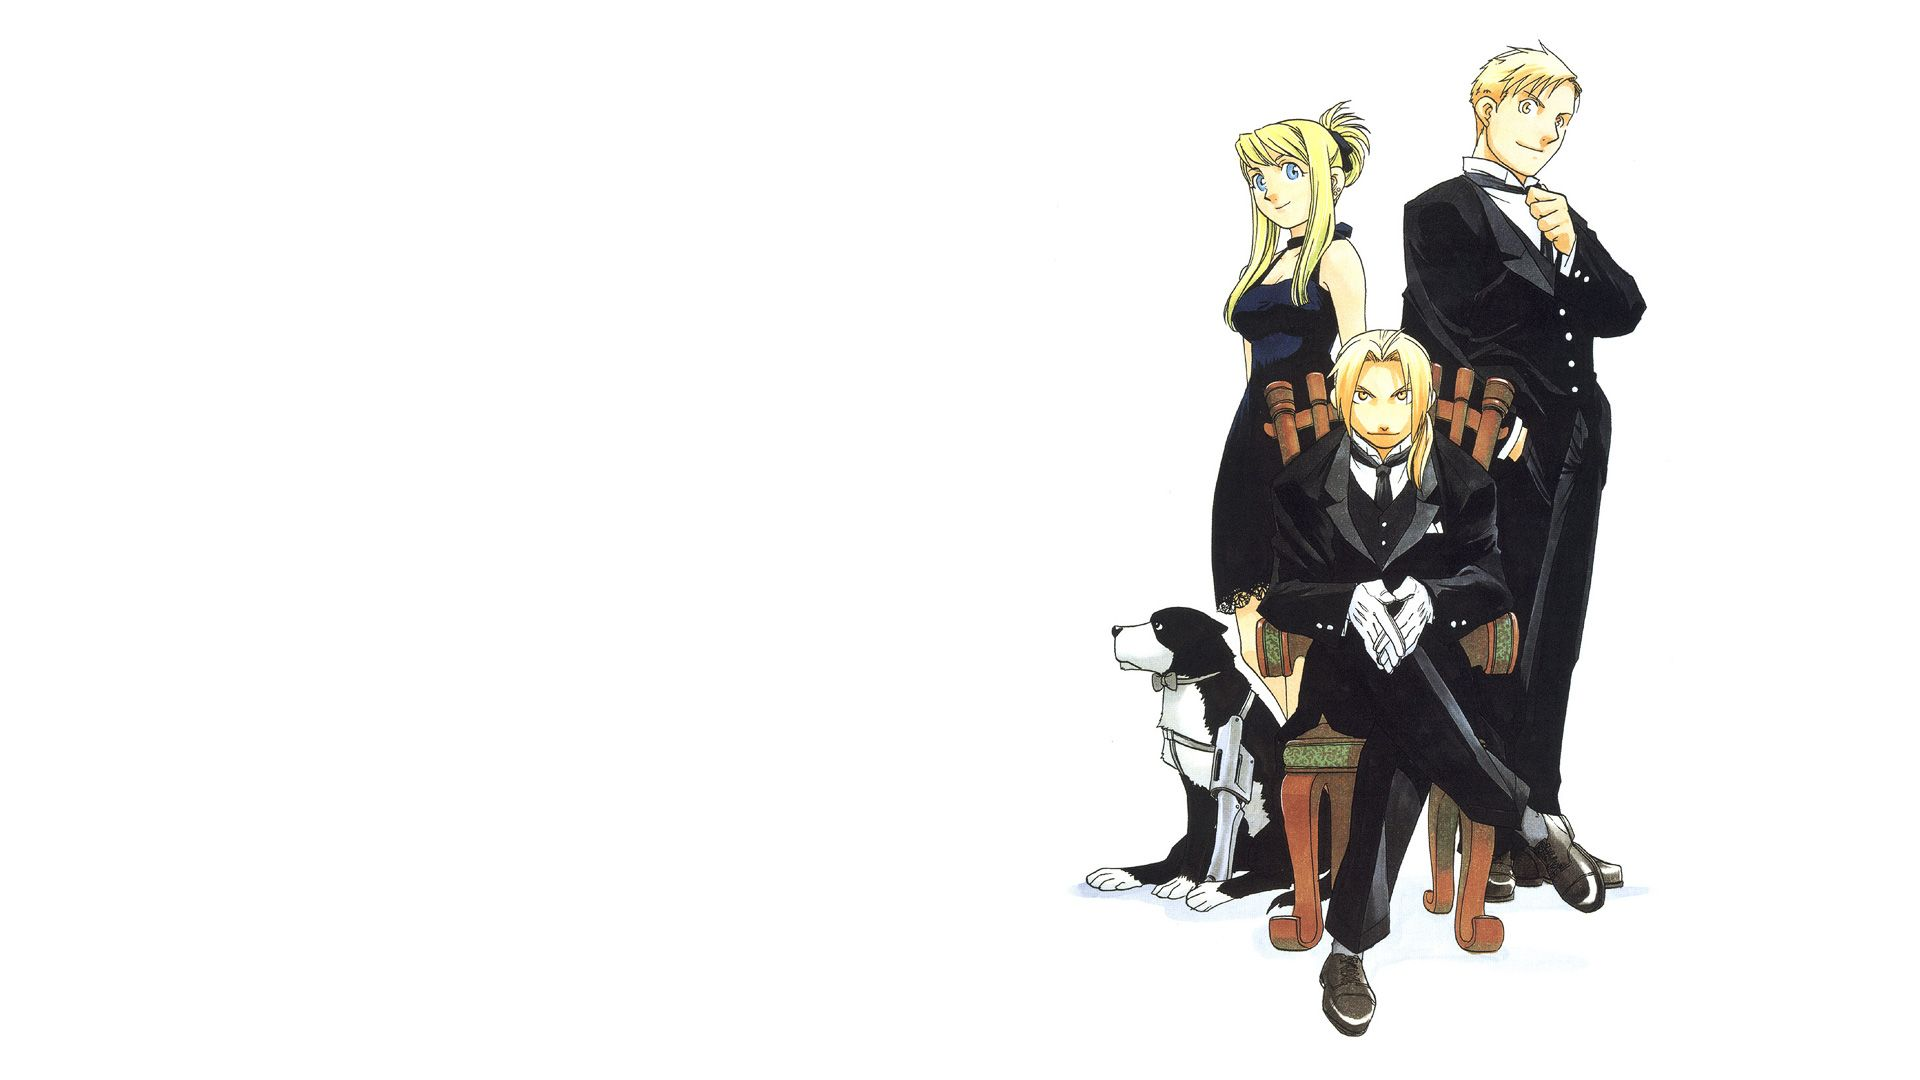 Fullmetal Alchemist Wallpaper Edward And Winry